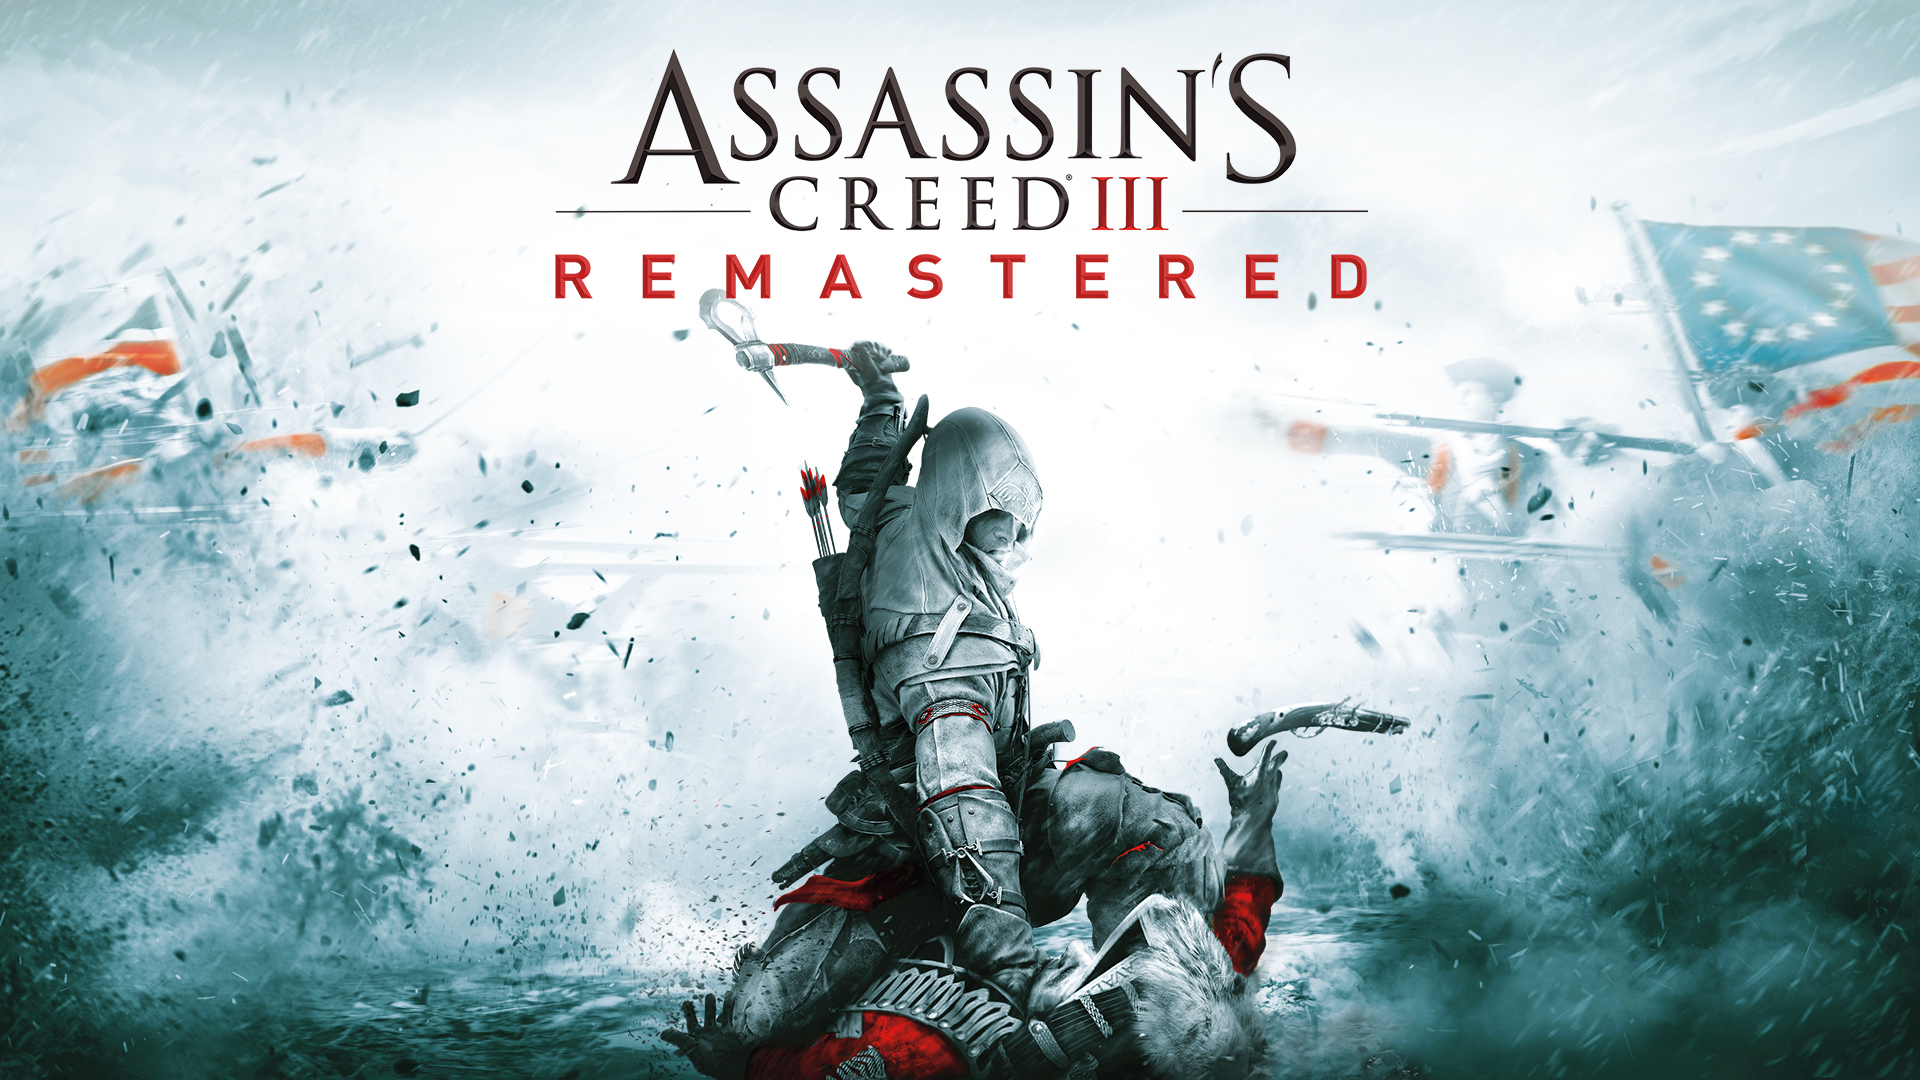 ASSASSINS CREED 3 PC Version Free Download